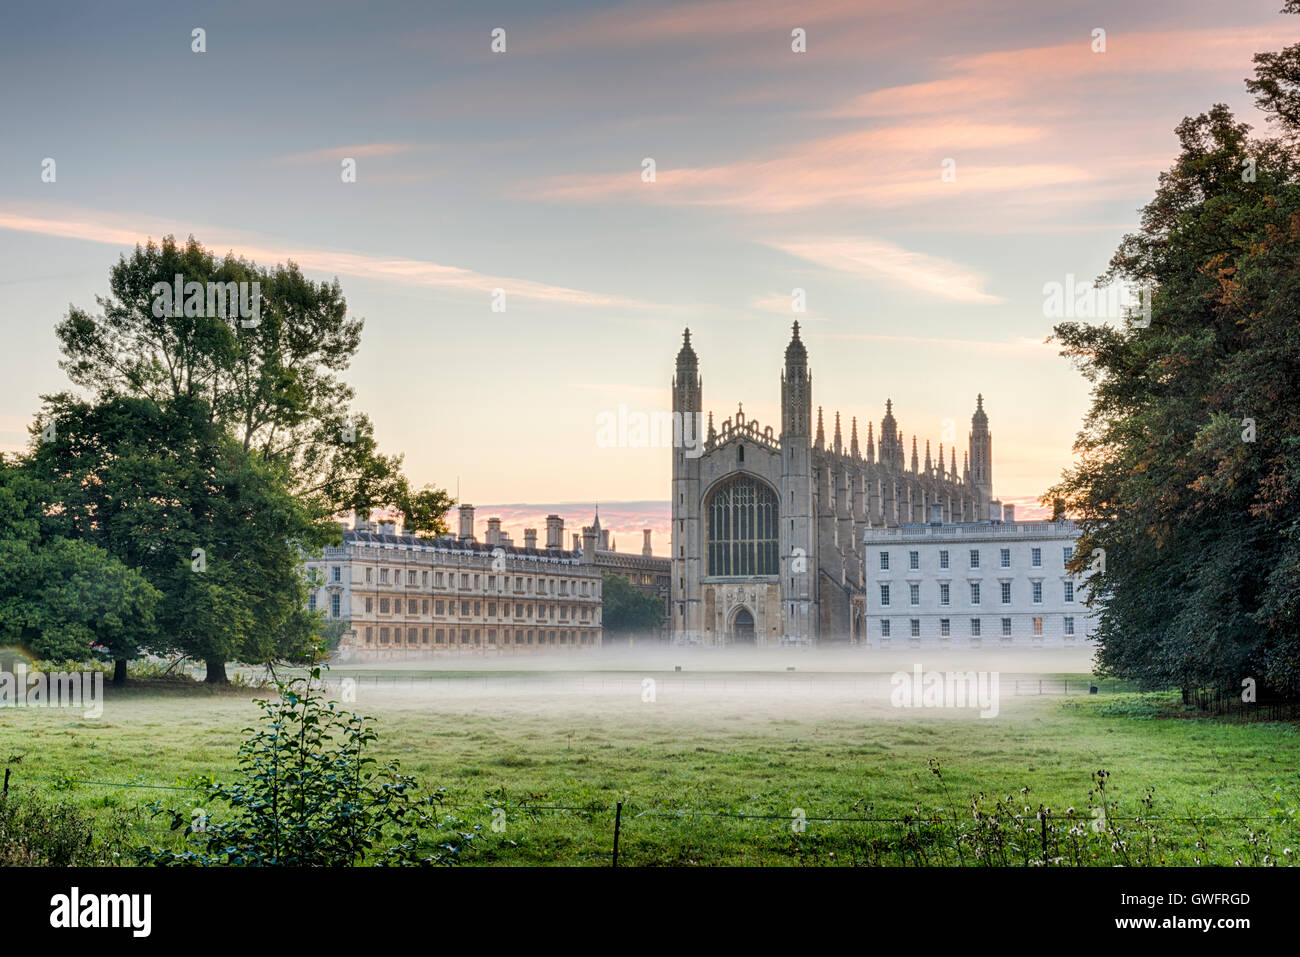 King's College, Cambridge, UK, 13 septembre 2016. La brume flotte dans l'air et de l'ensemble des pelouses Photo Stock